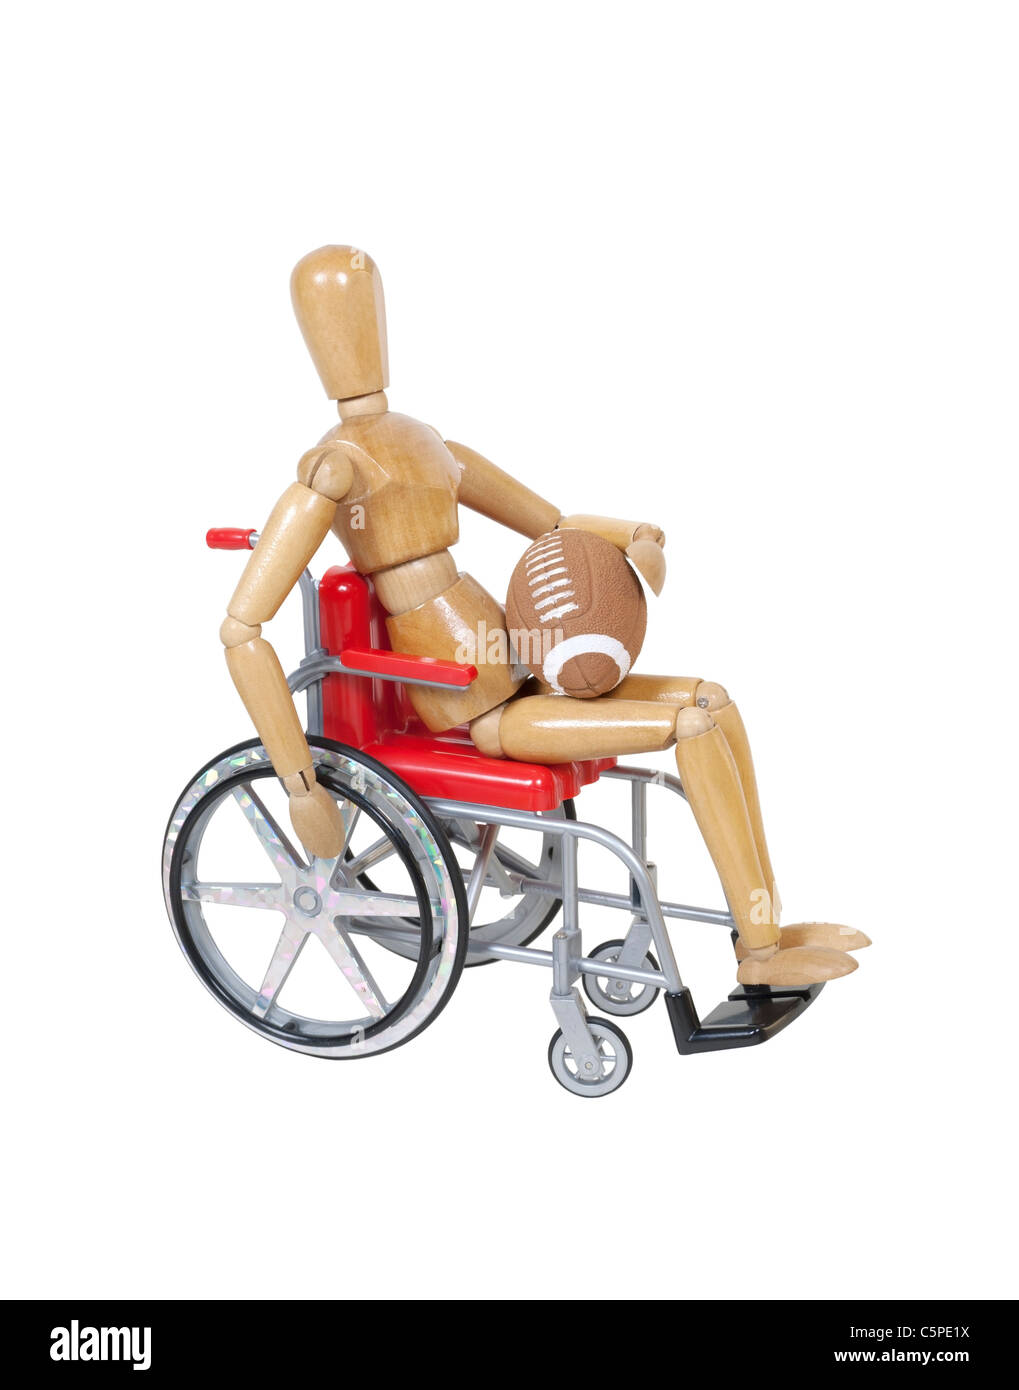 Model in a wheelchair holding a football - path included - Stock Image